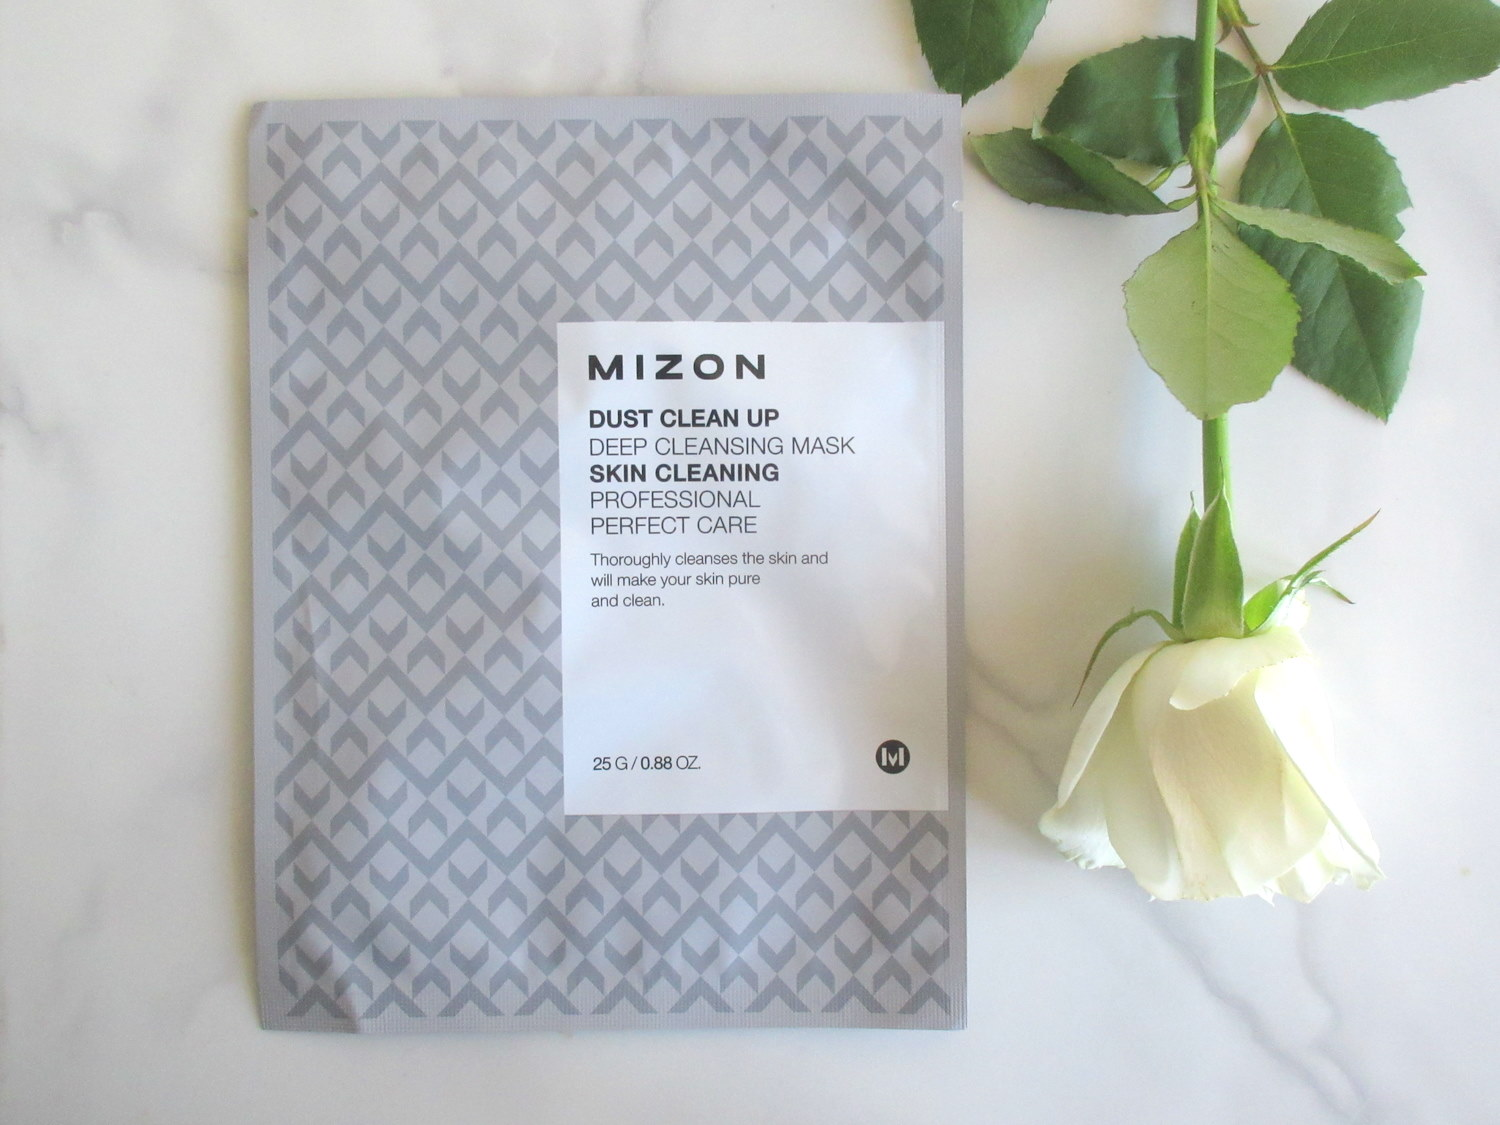 Mizon Dust Clean Up Deep Cleansing Mask